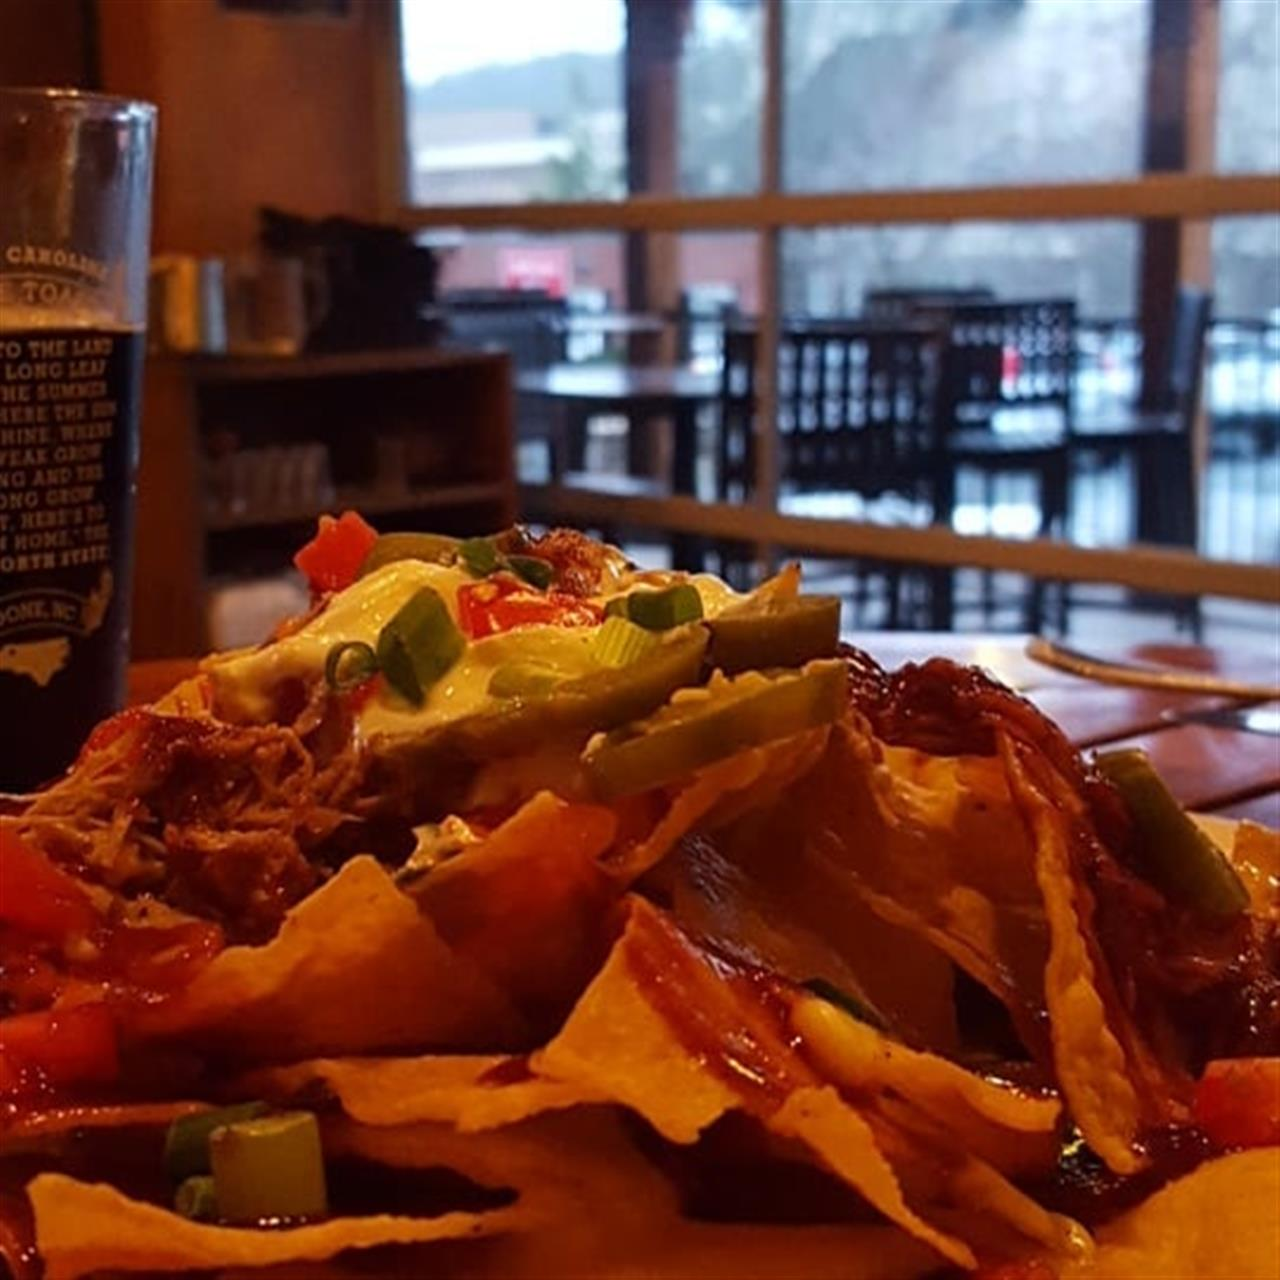 The pulled pork nachos at @thelocalboone are to DIE for! Paired with a local Belgian Trippel and we have dinner :-) #CarlsonRealtors #LeadingRELocal #BlowingRock #Boone #HighCountryHomeSpecialist #RealEstate #NCHighCountry #NCMountains #Realtorlife #BooneNC